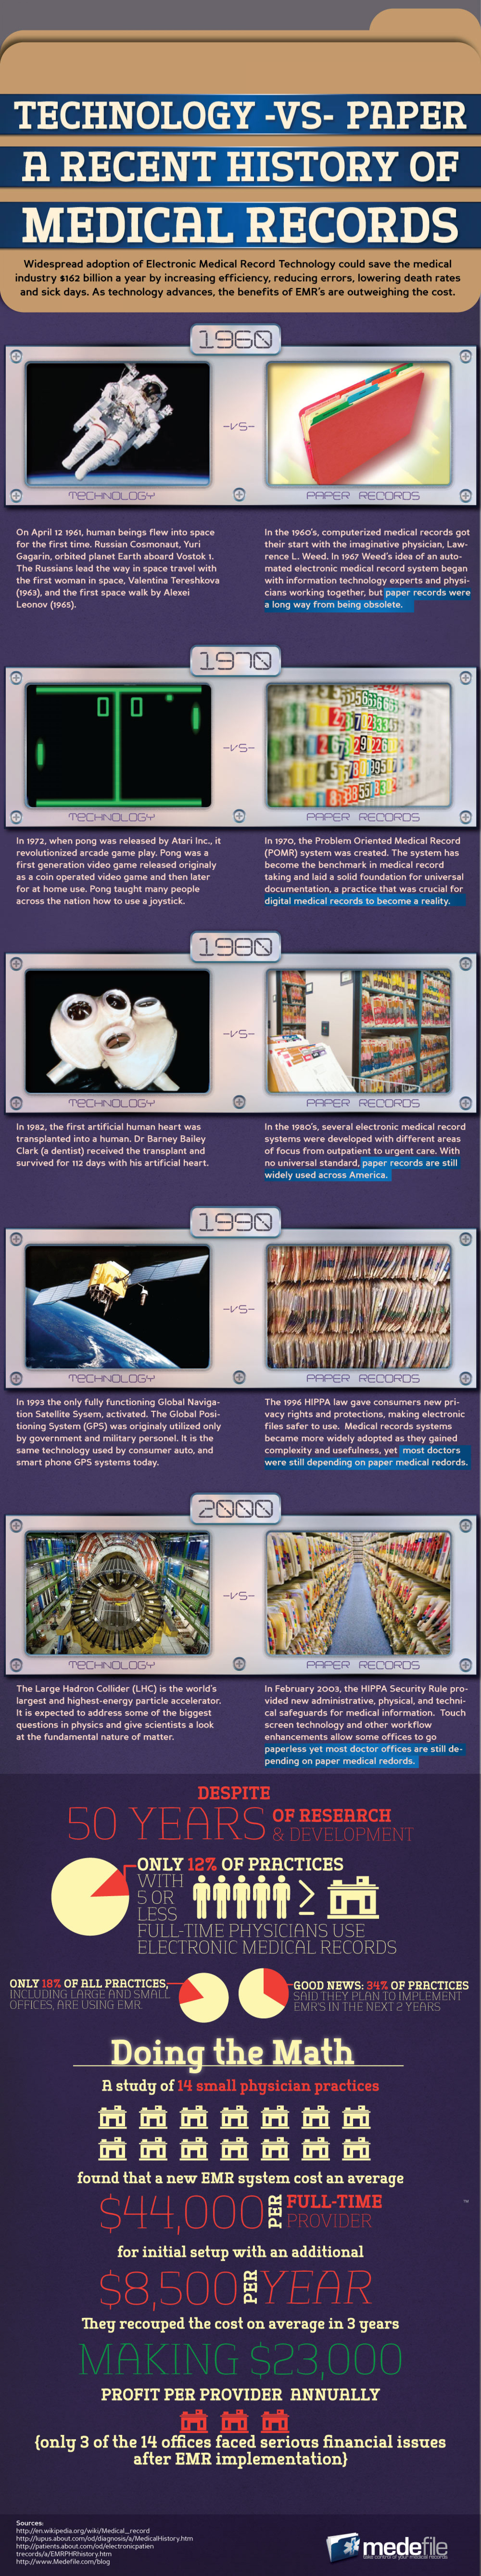 Technology VS Paper Infographic